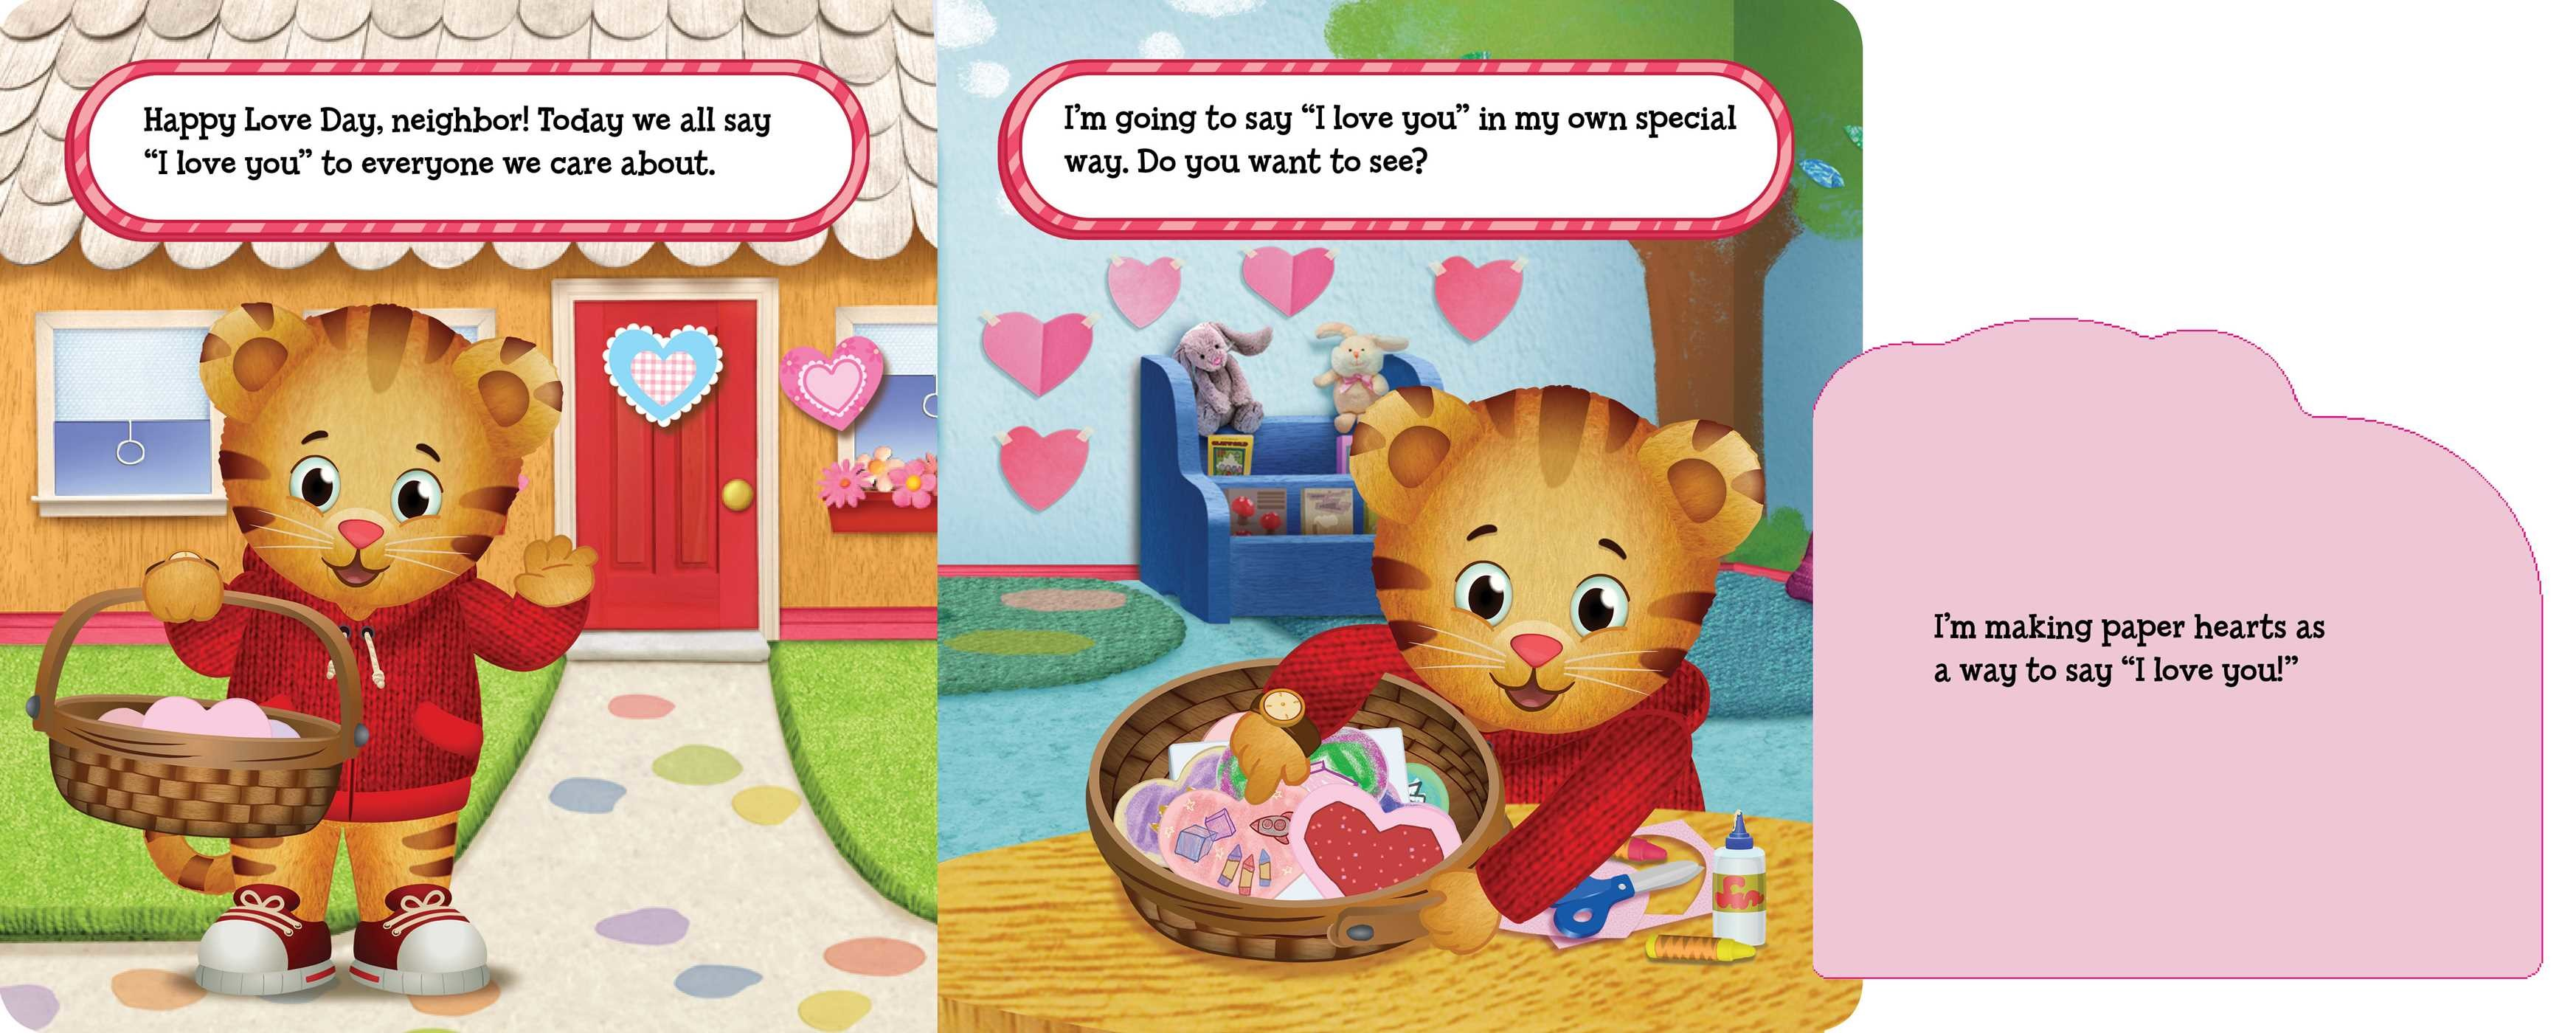 Exceptional ... Happy Love Day Daniel Tiger 9781481448550.in01 ...